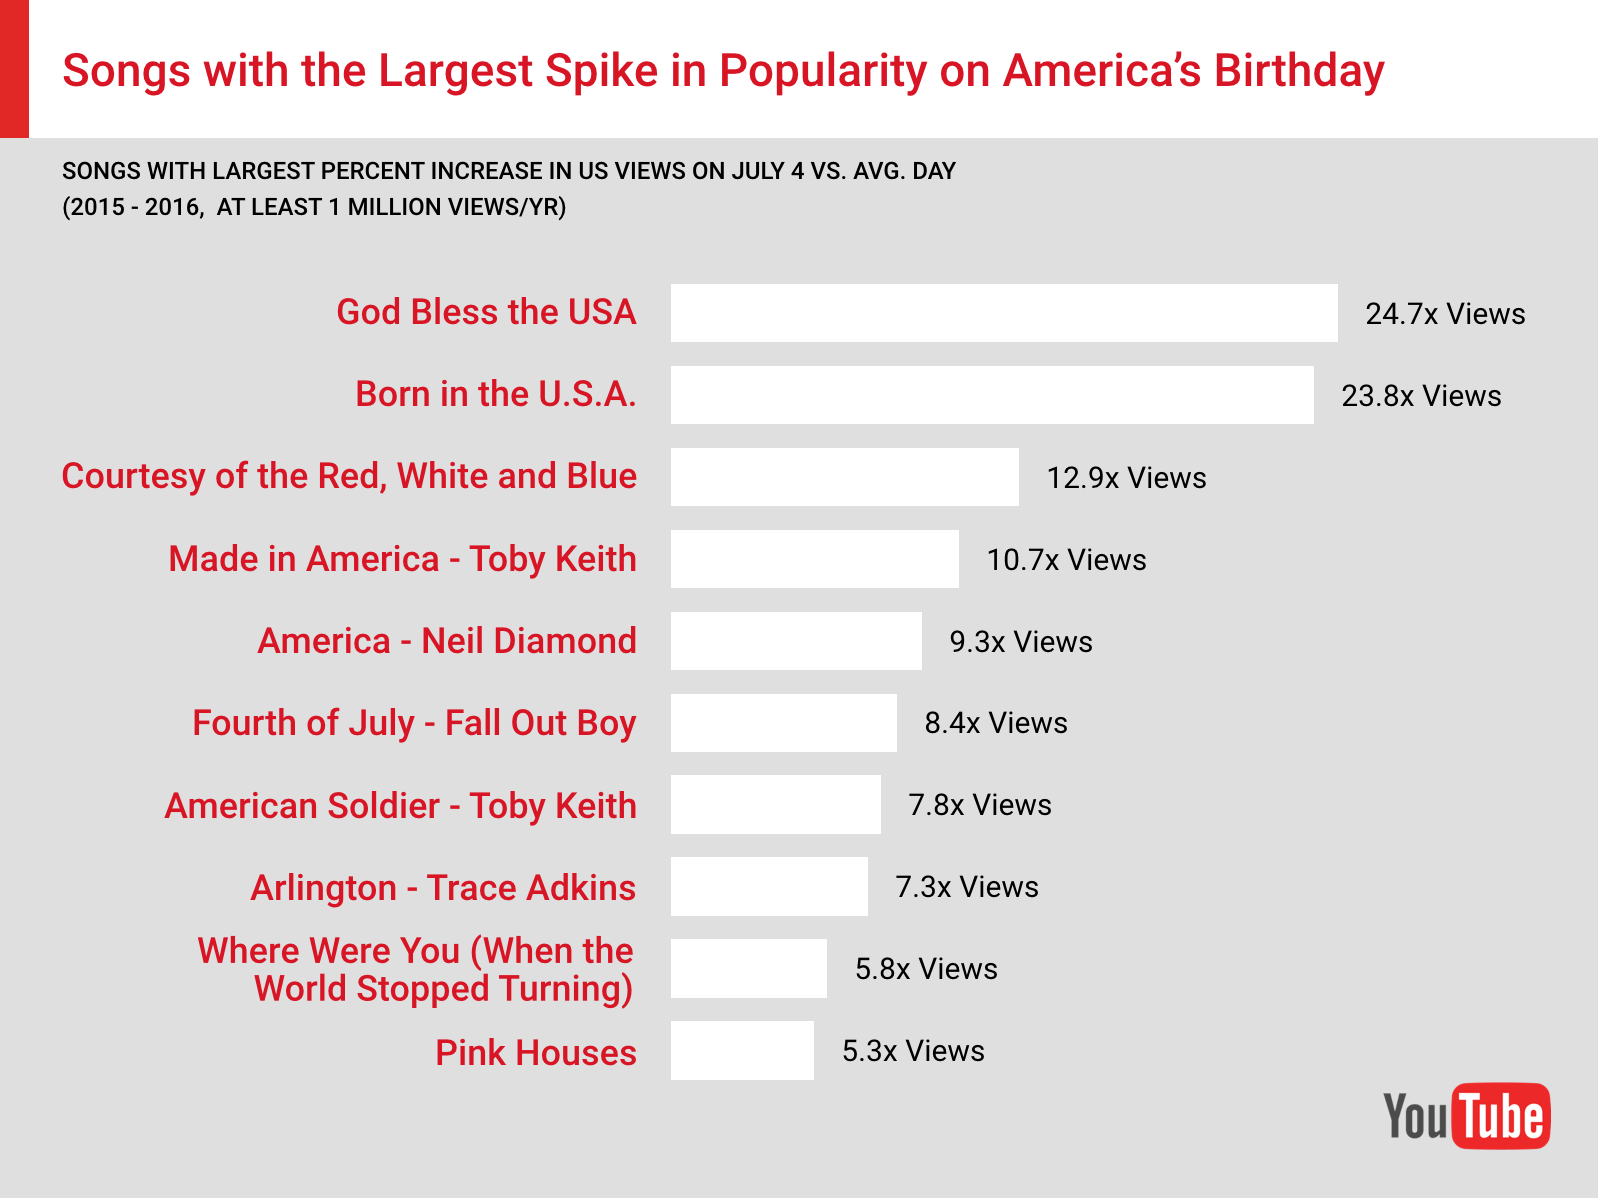 The Songs And Artists That Spike In Popularity On Americas Birthday My Icon Rakutencouk Shopping Short Circuit Nova Labs Kids Tshirt Nationally Remaining Top 10 Include By Neil Diamond Fall Out Boy Trace Adkins